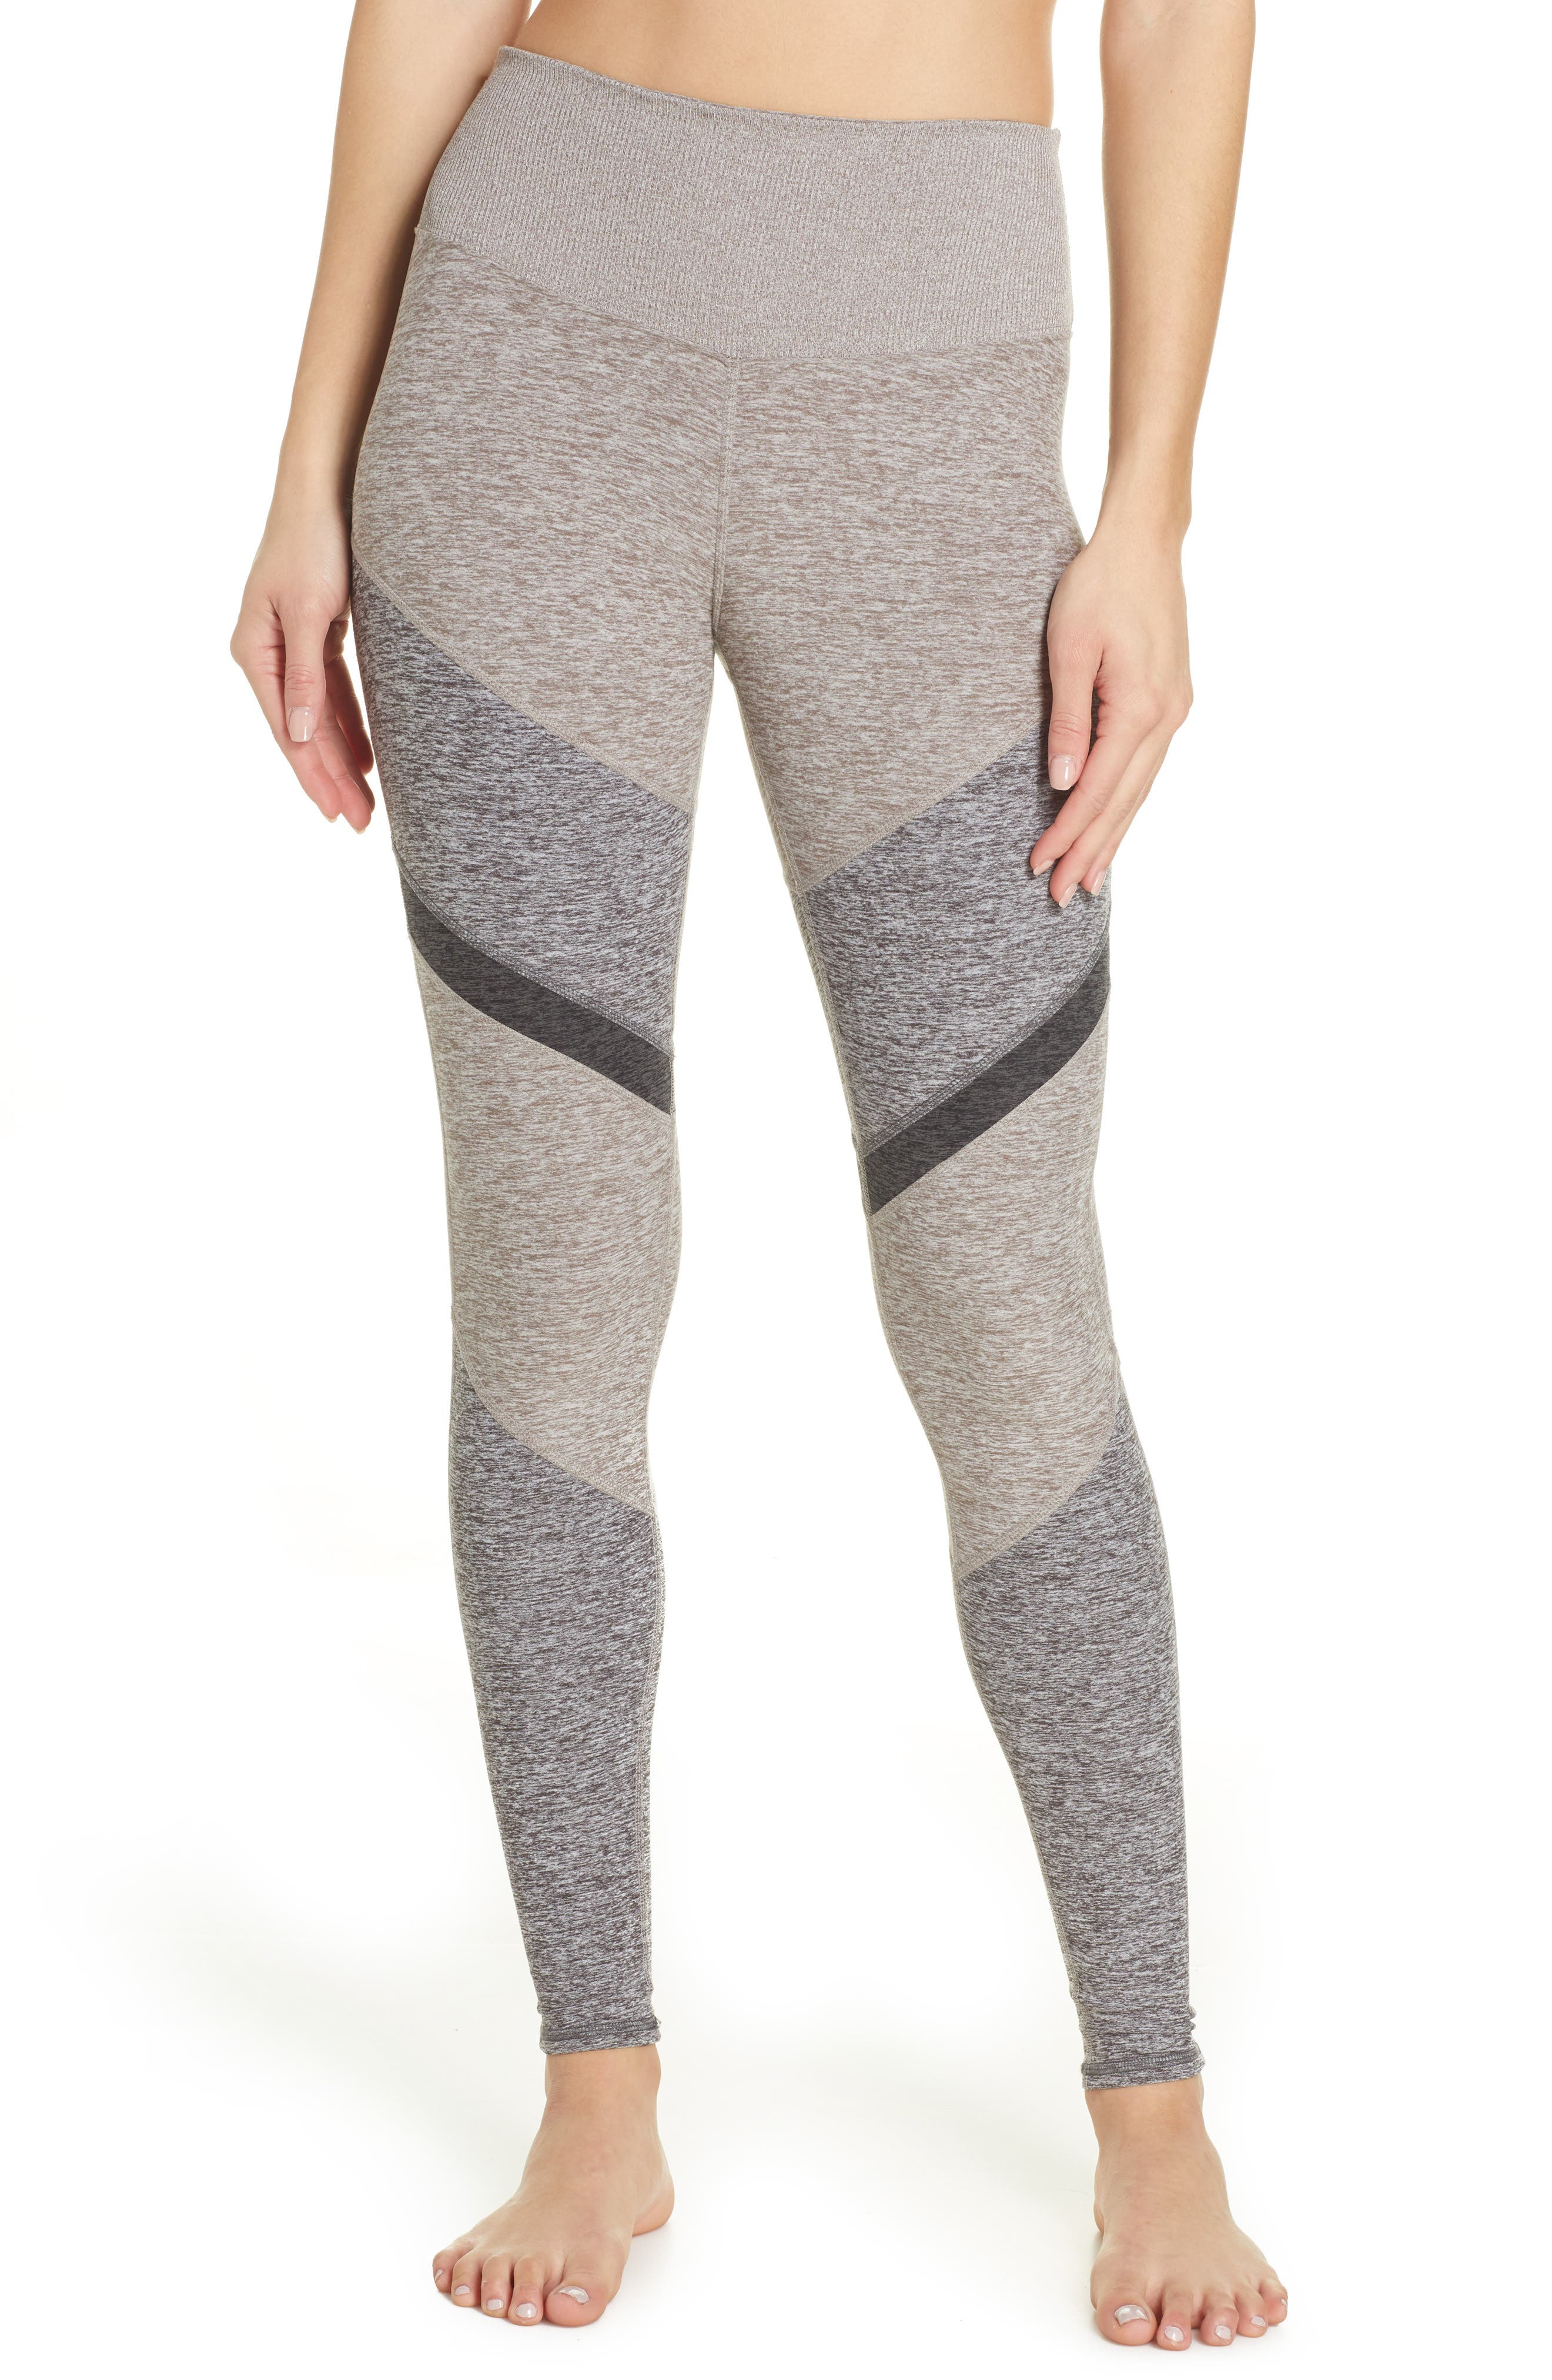 ALO Sheila Alosoft High Waist Leggings, Main, color, GRAVEL HEATHER/ DOVE GREY